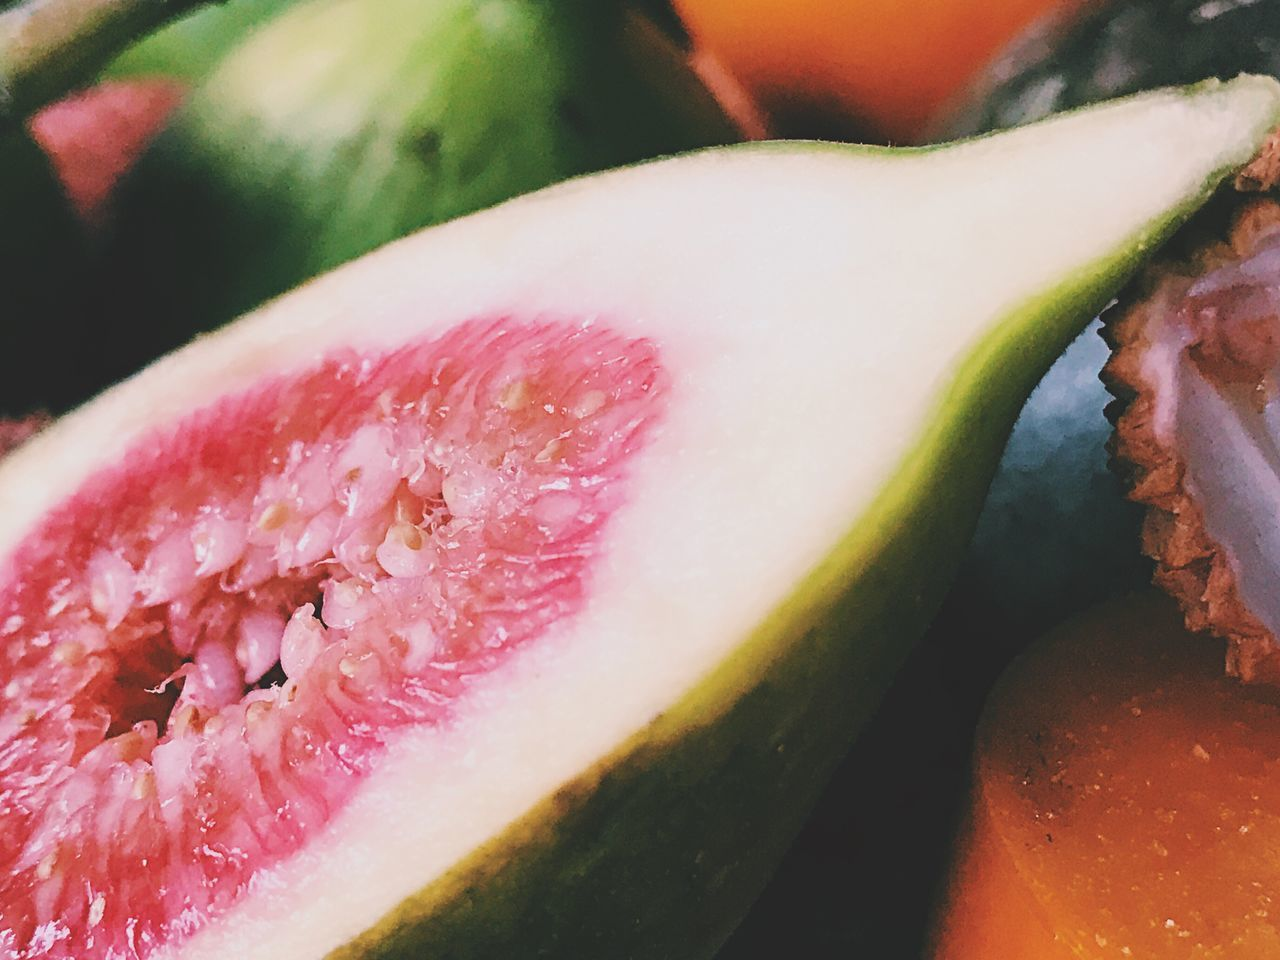 Freshness Fruit Healthy Eating Close-up Food And Drink SLICE Food Citrus Fruit Juicy No People Halved Cross Section Grapefruit Indoors  Day Fig Figs Fruits Tabletop Close Up Closeup Food Photography Still Life Photography Exotic Fruits Exotic Fruit